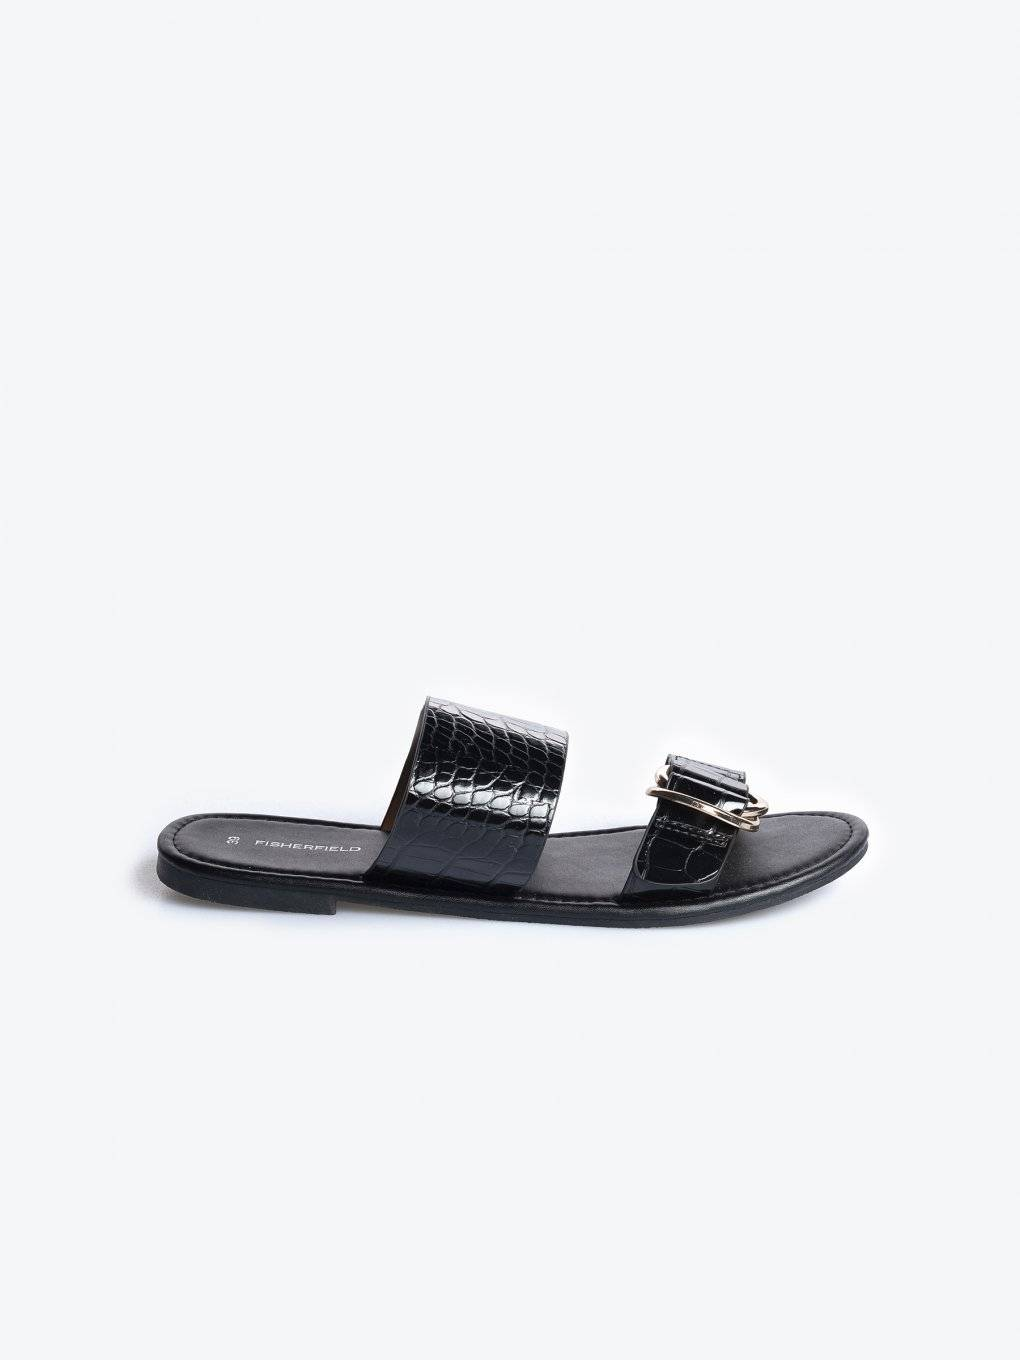 Slides with croc effect